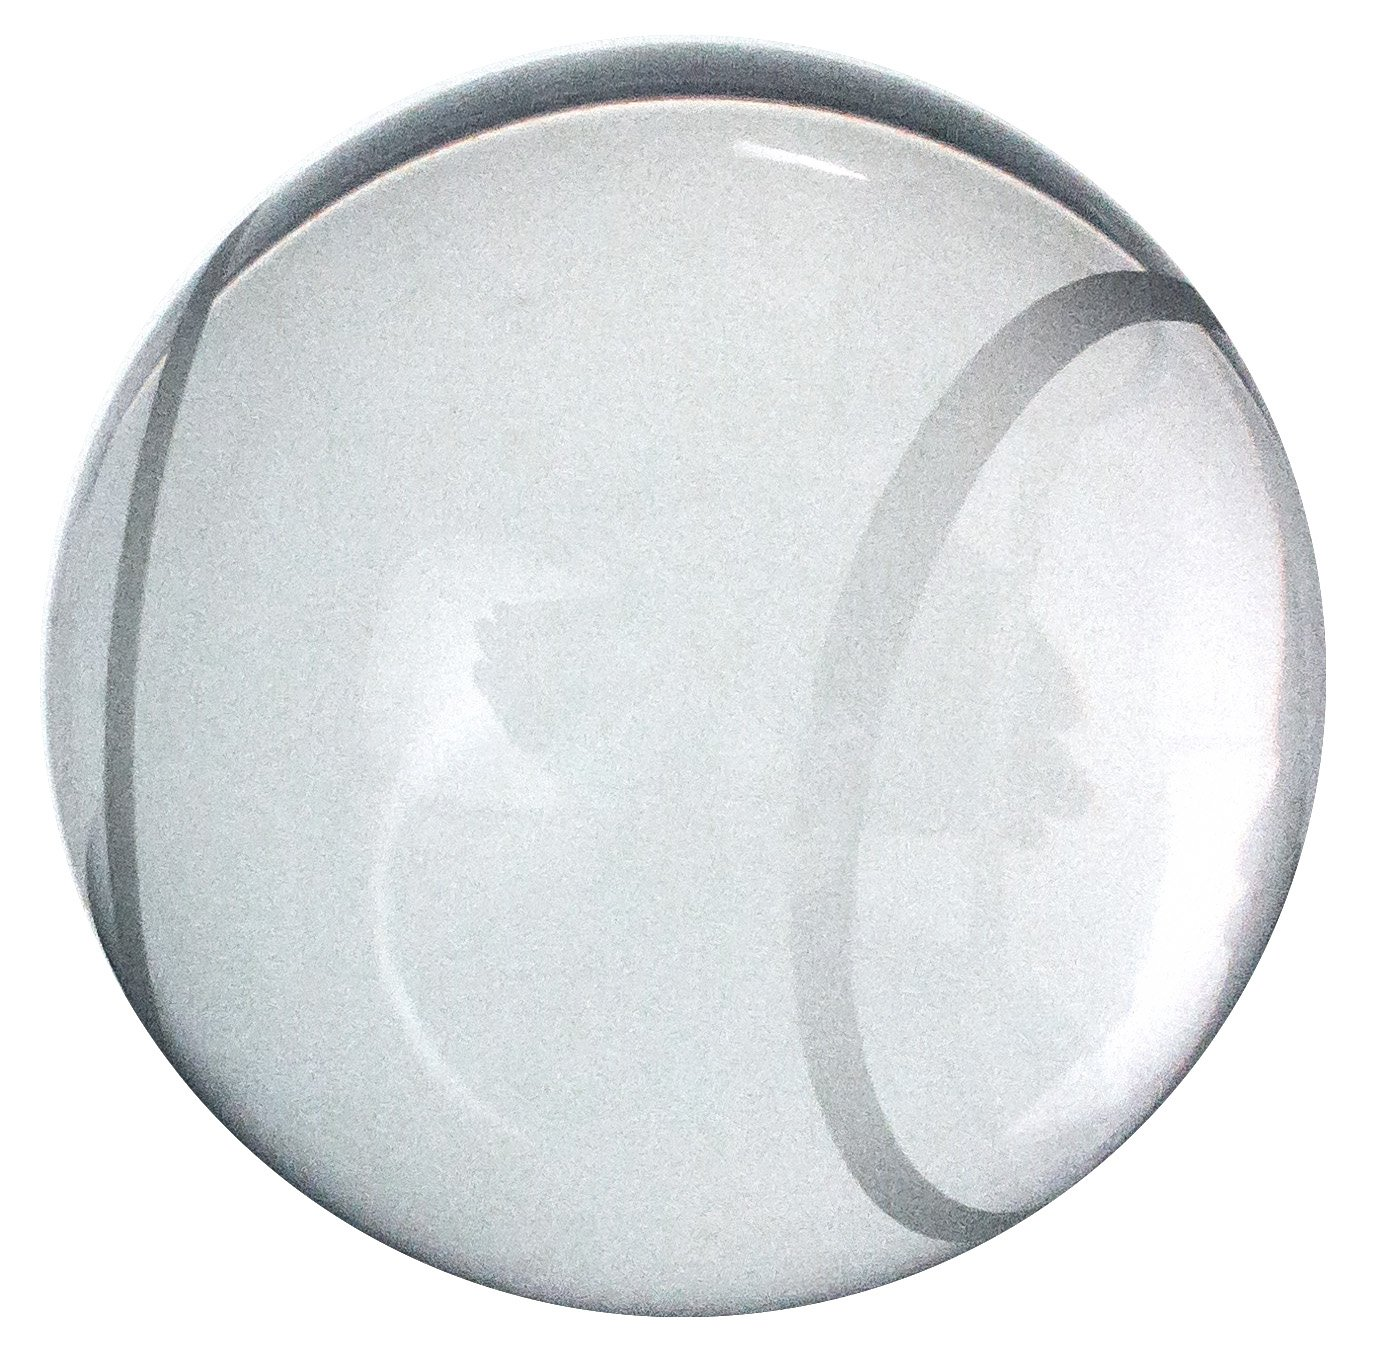 Amlong Crystal Tennis Ball Paperweight 3 inch with Gift Box by Amlong Crystal